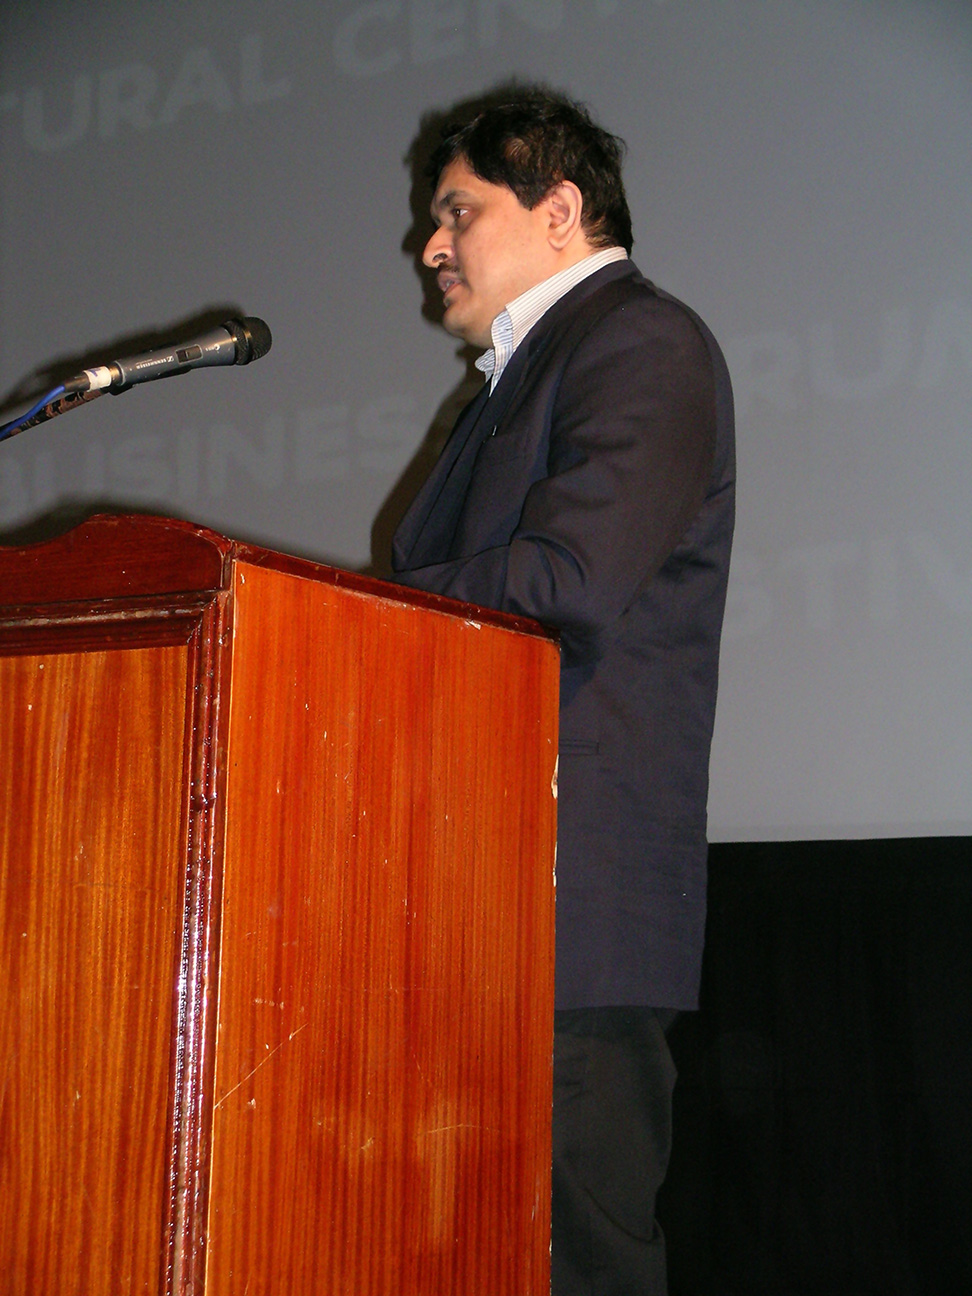 Speaking at the function